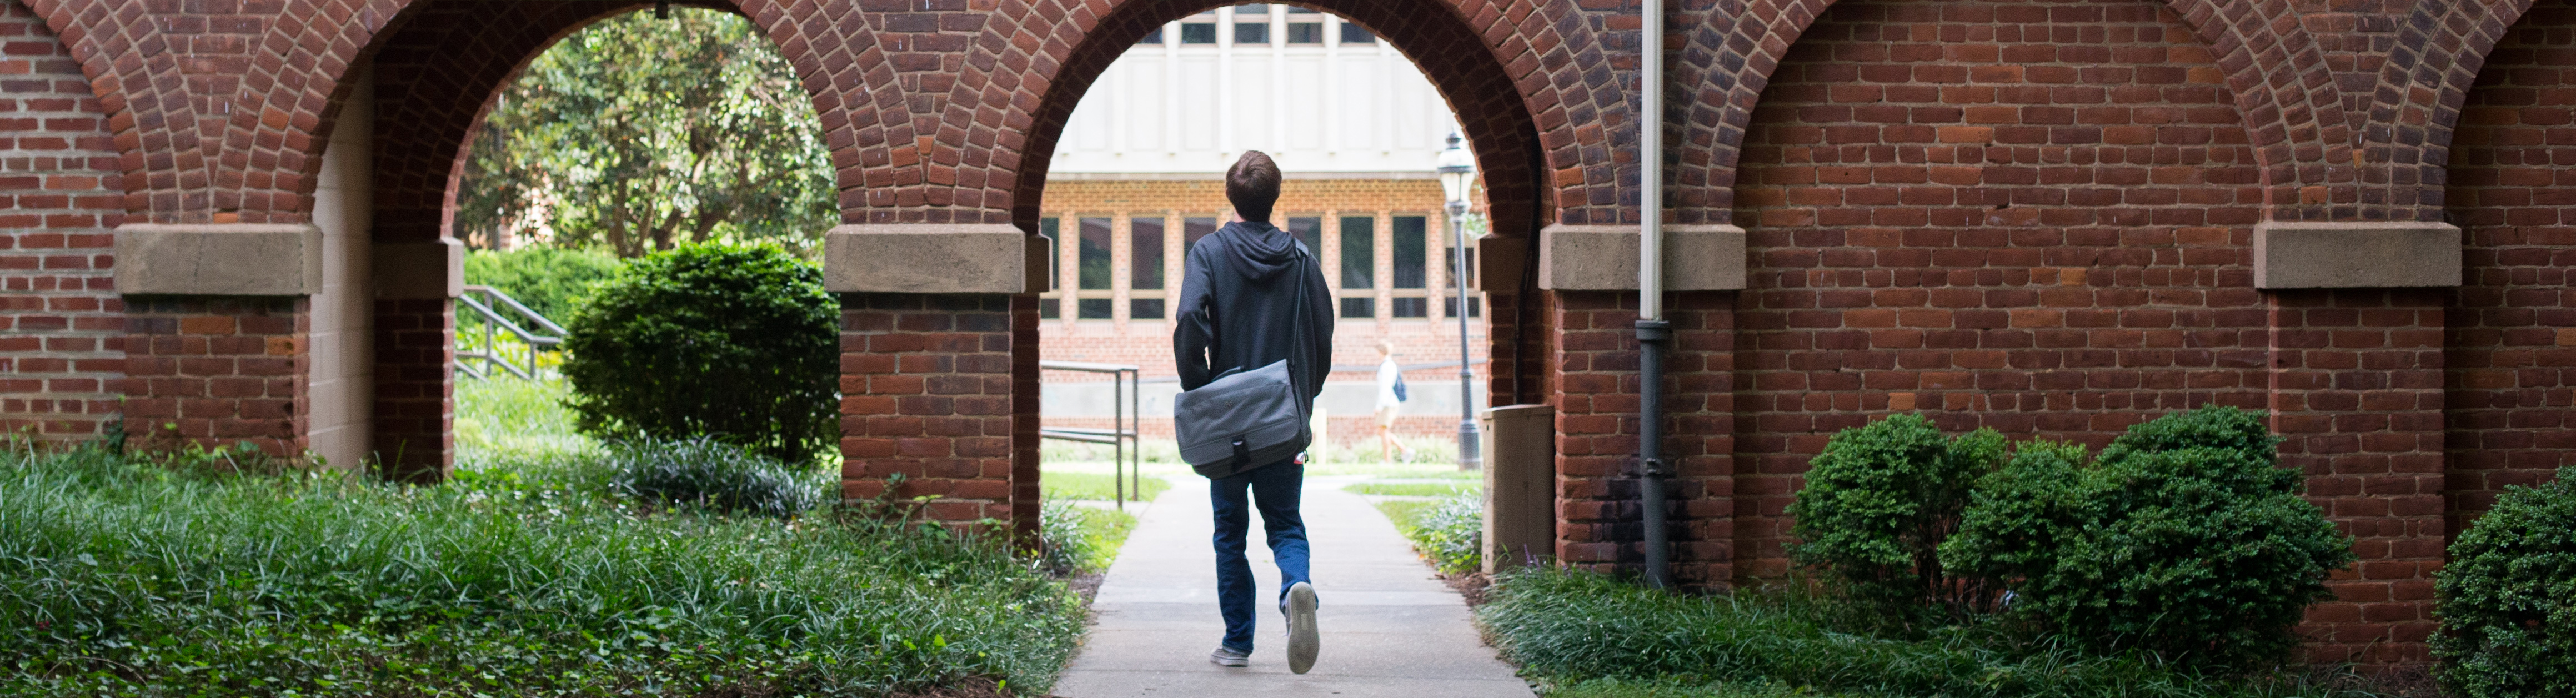 Photo of student walking through campus.